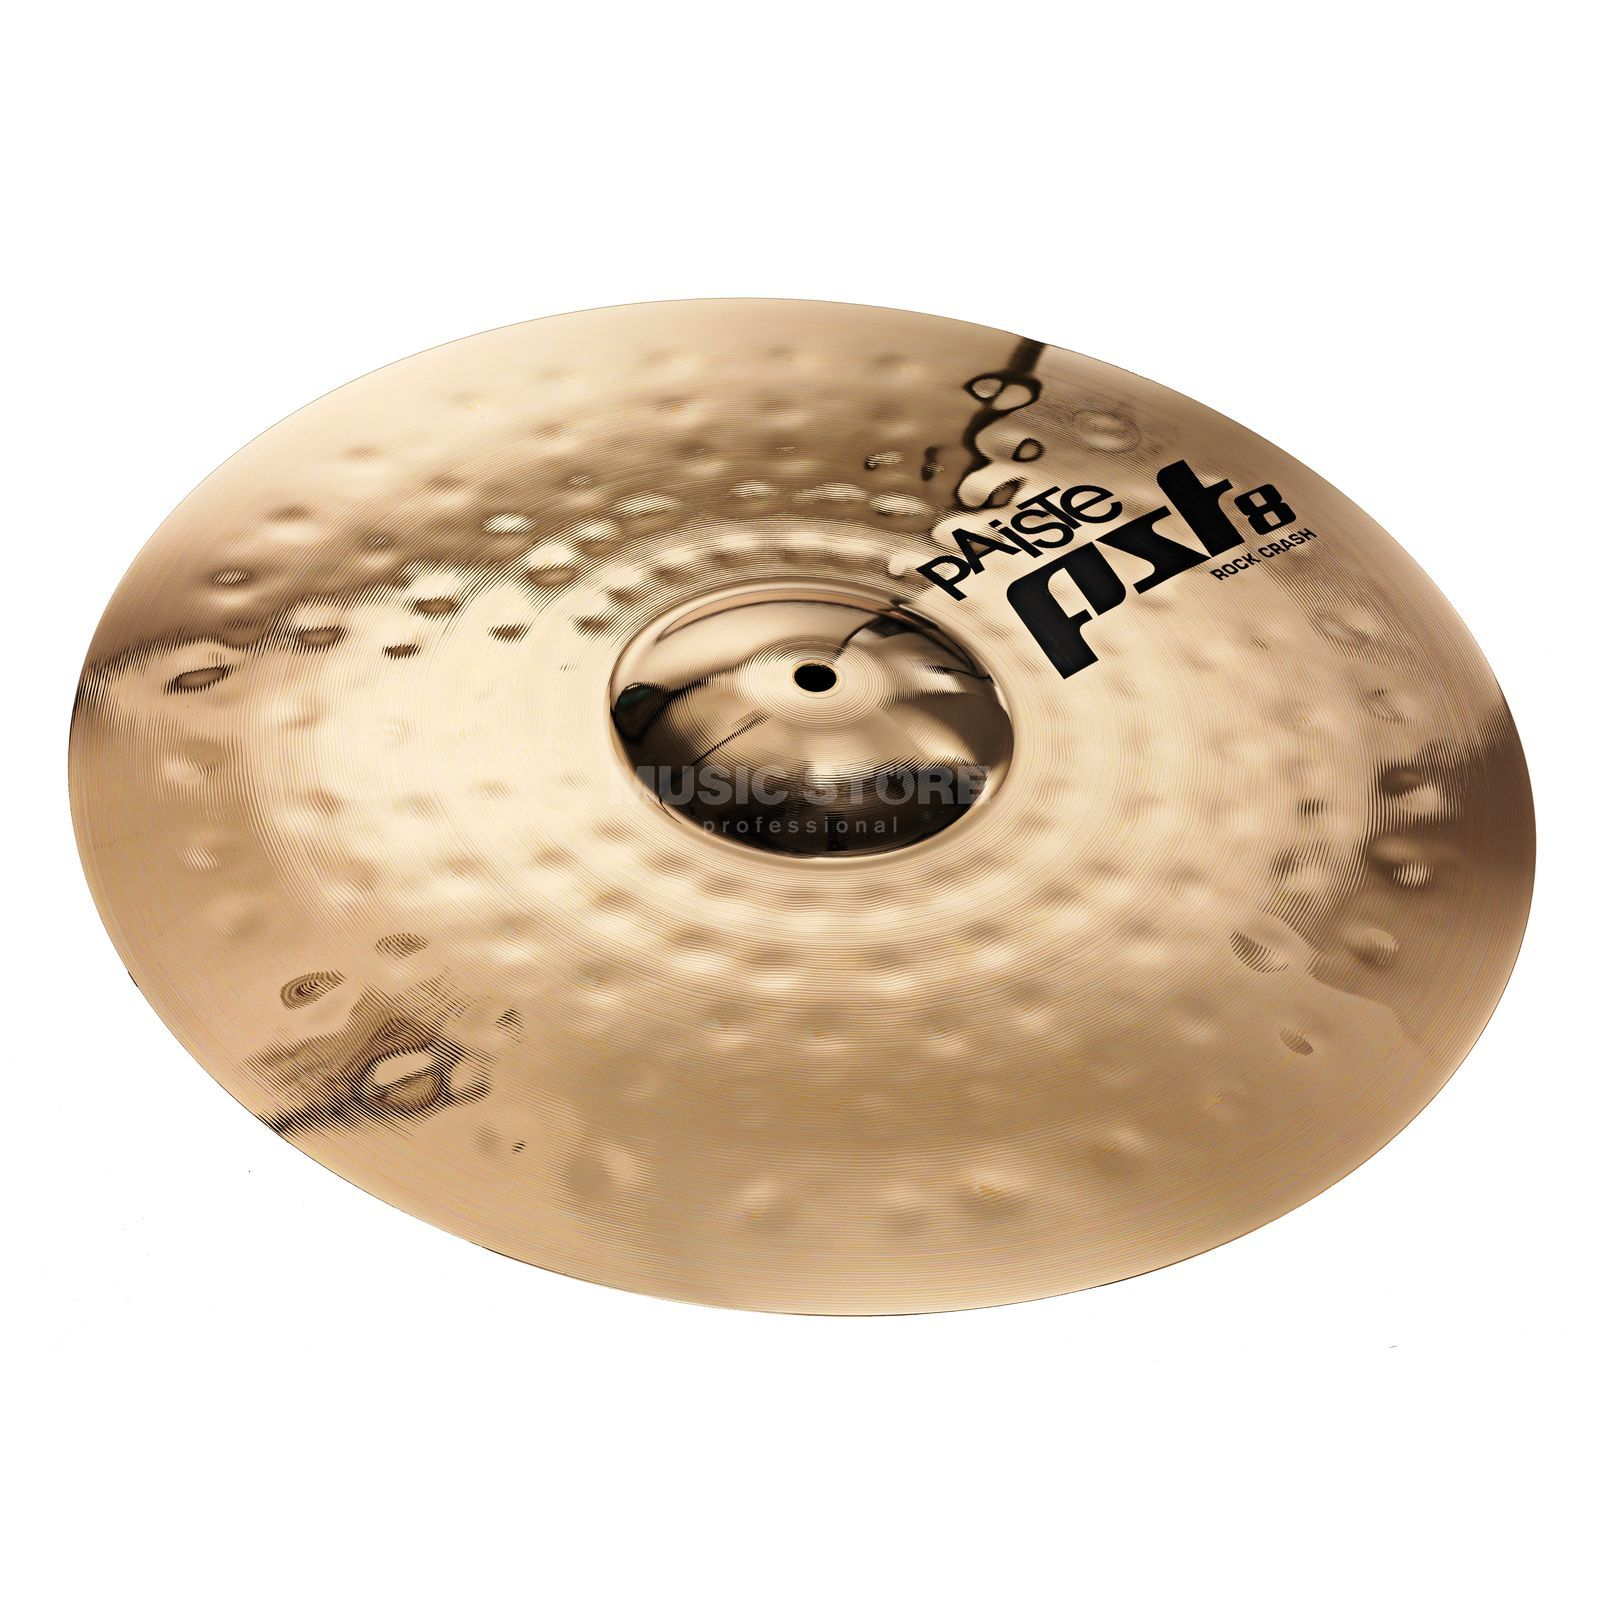 "Paiste PST8 Rock Crash 17"", Reflector Finish Zdjęcie produktu"